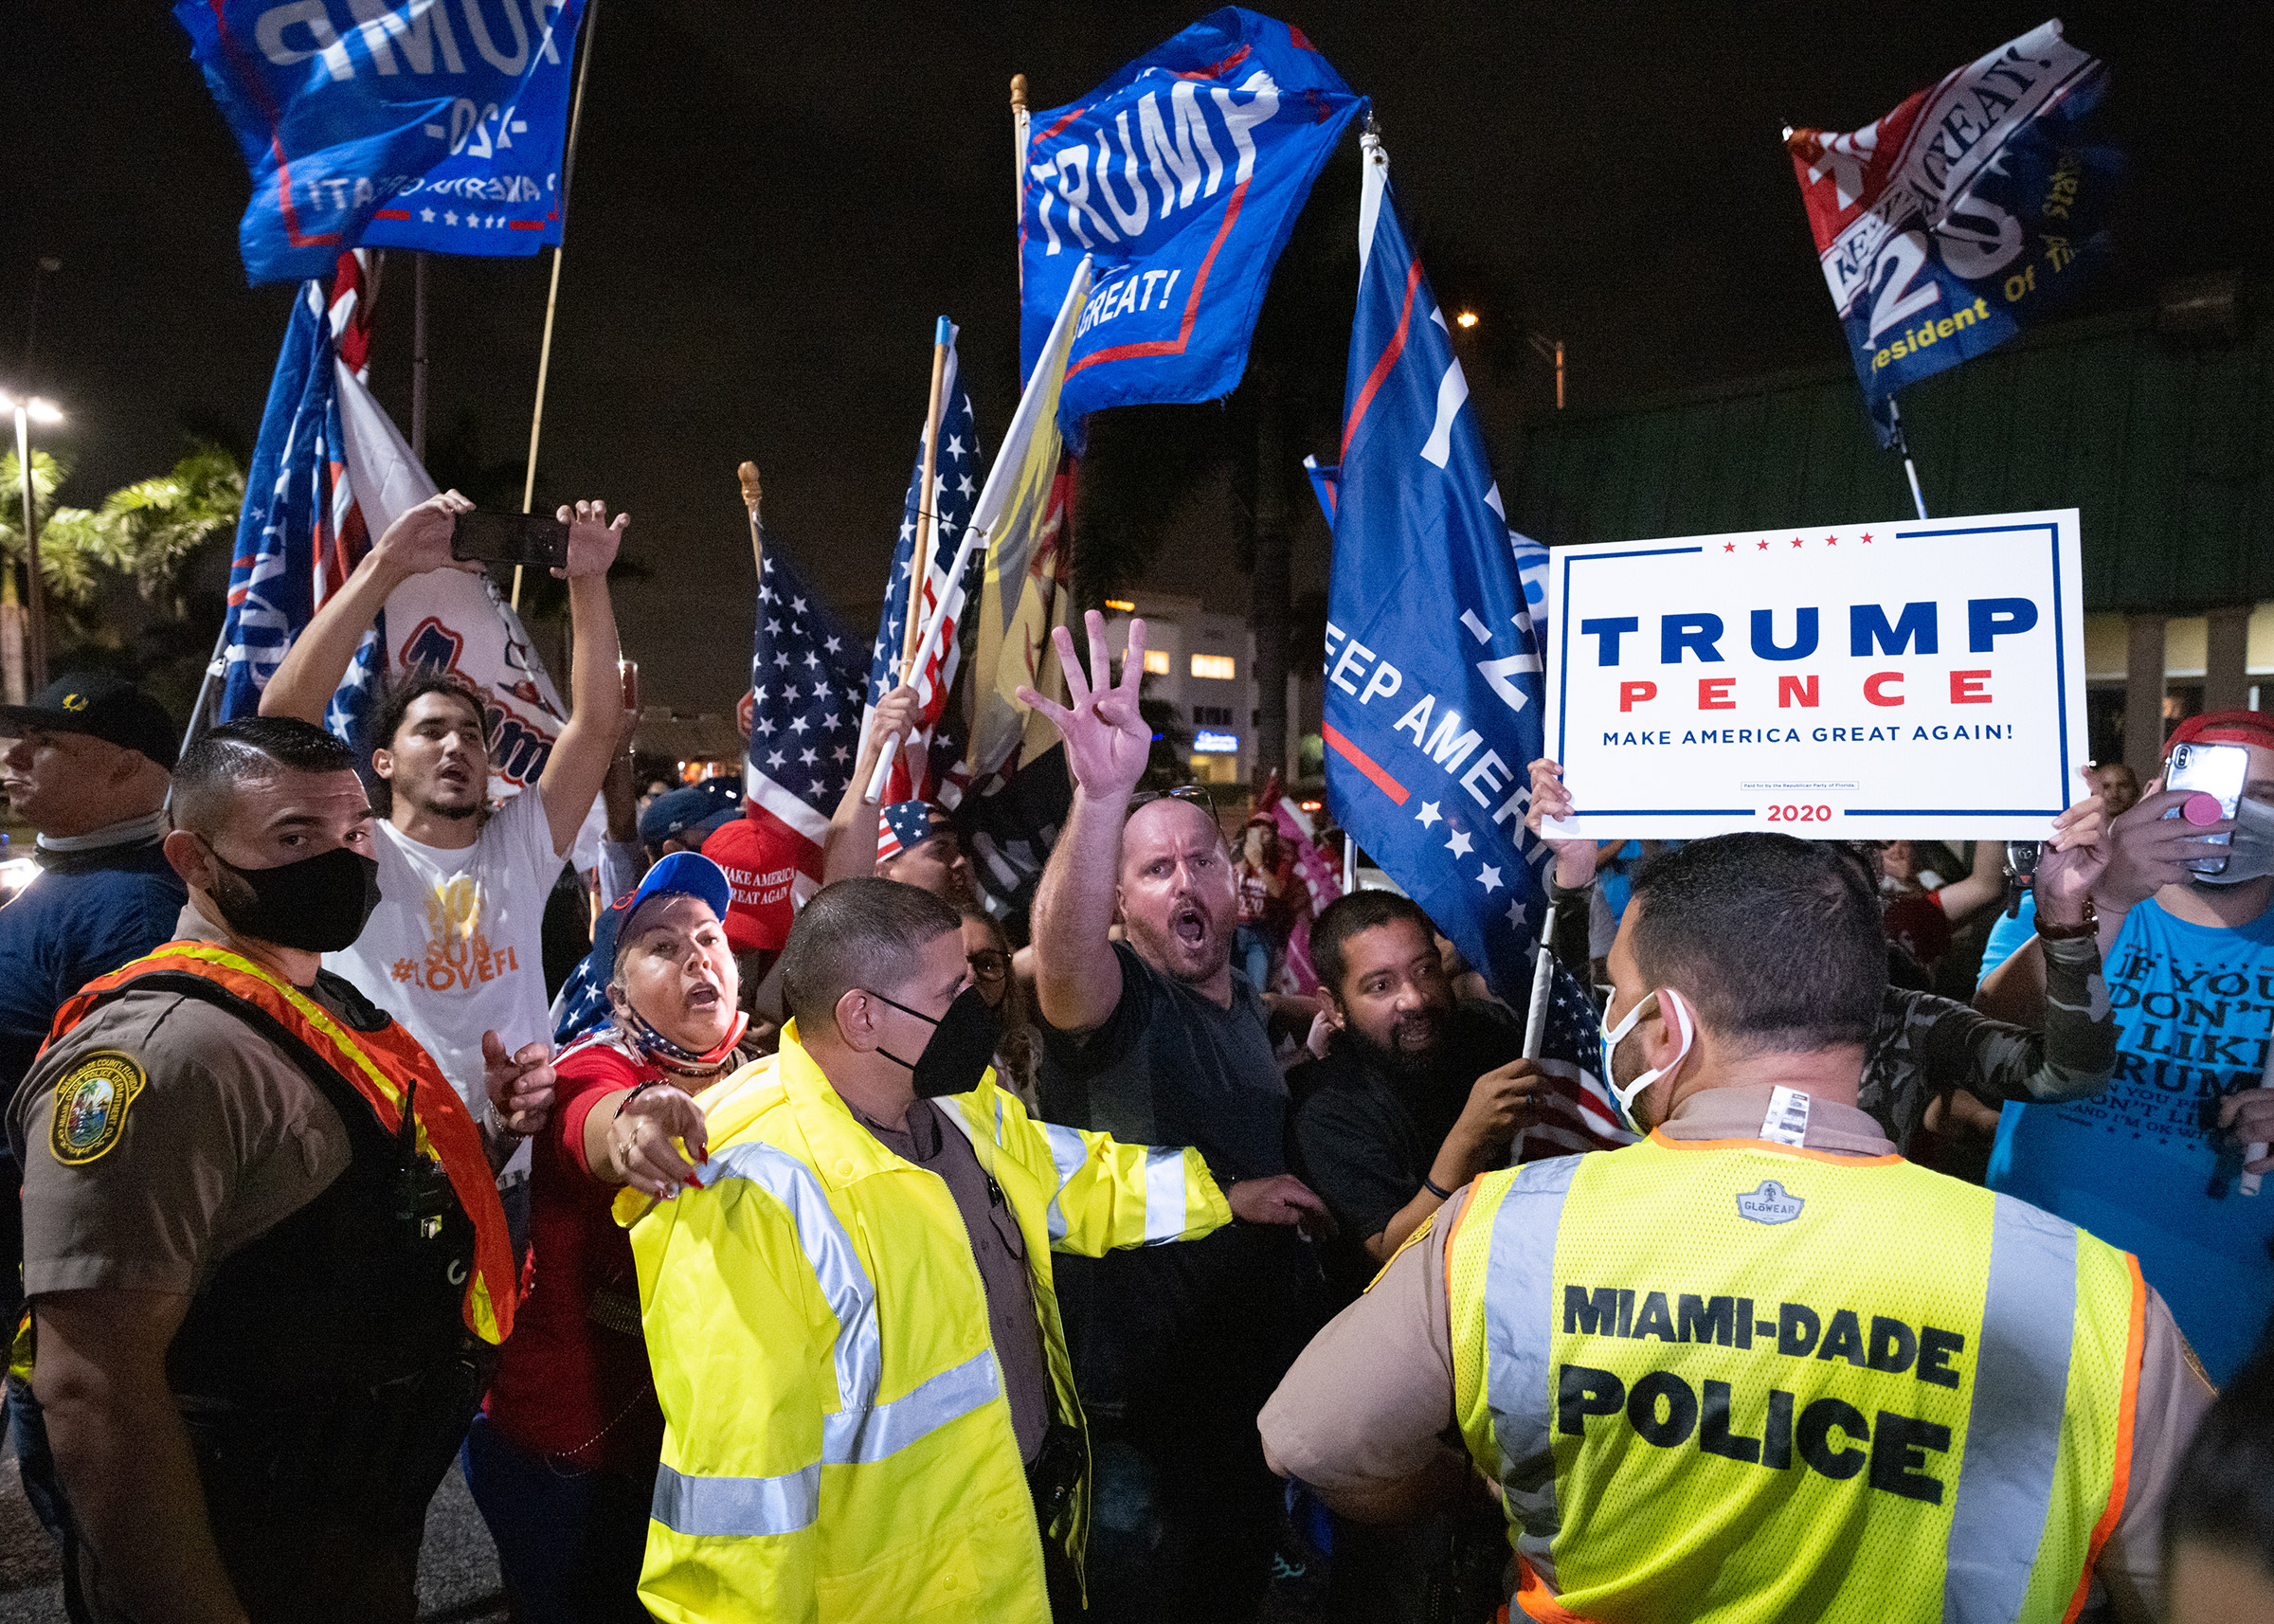 Supporters of President Trump demonstrate, argue with press and become hostile at the Cuban restaurant La Carreta in Miami on Nov. 7.